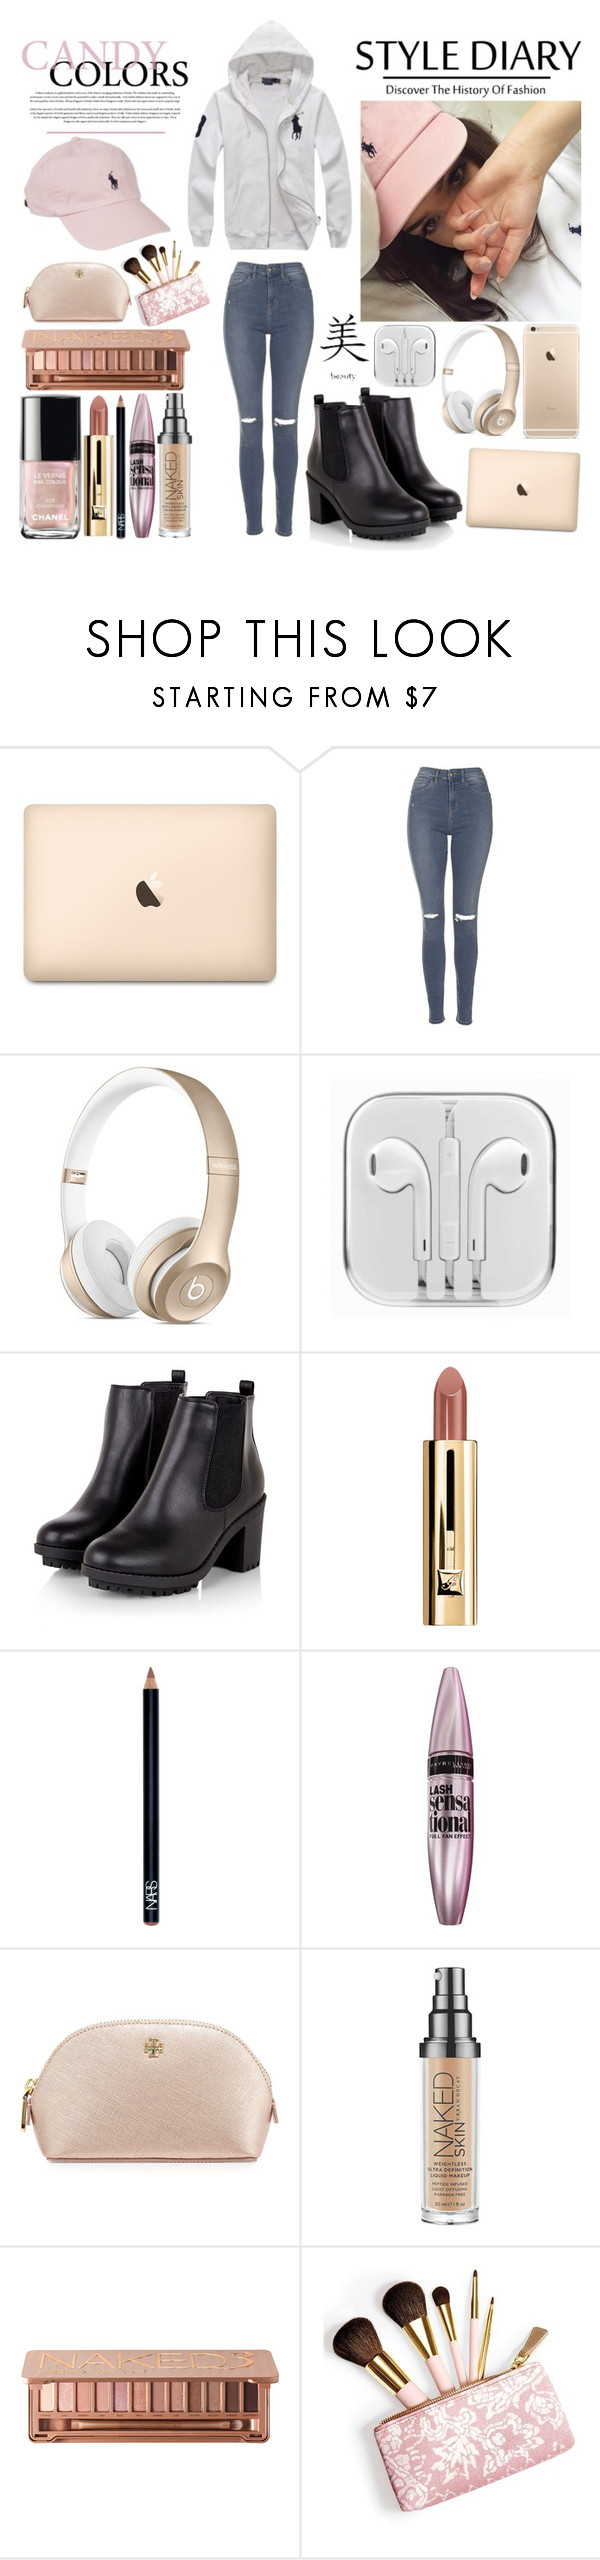 """""""Alicia Jiroux ♥"""" by laceyjenner ❤ liked on Polyvore featuring Ralph Lauren, Topshop, MANGO, Maybelline, Tory Burch, Urban Decay and AERIN"""